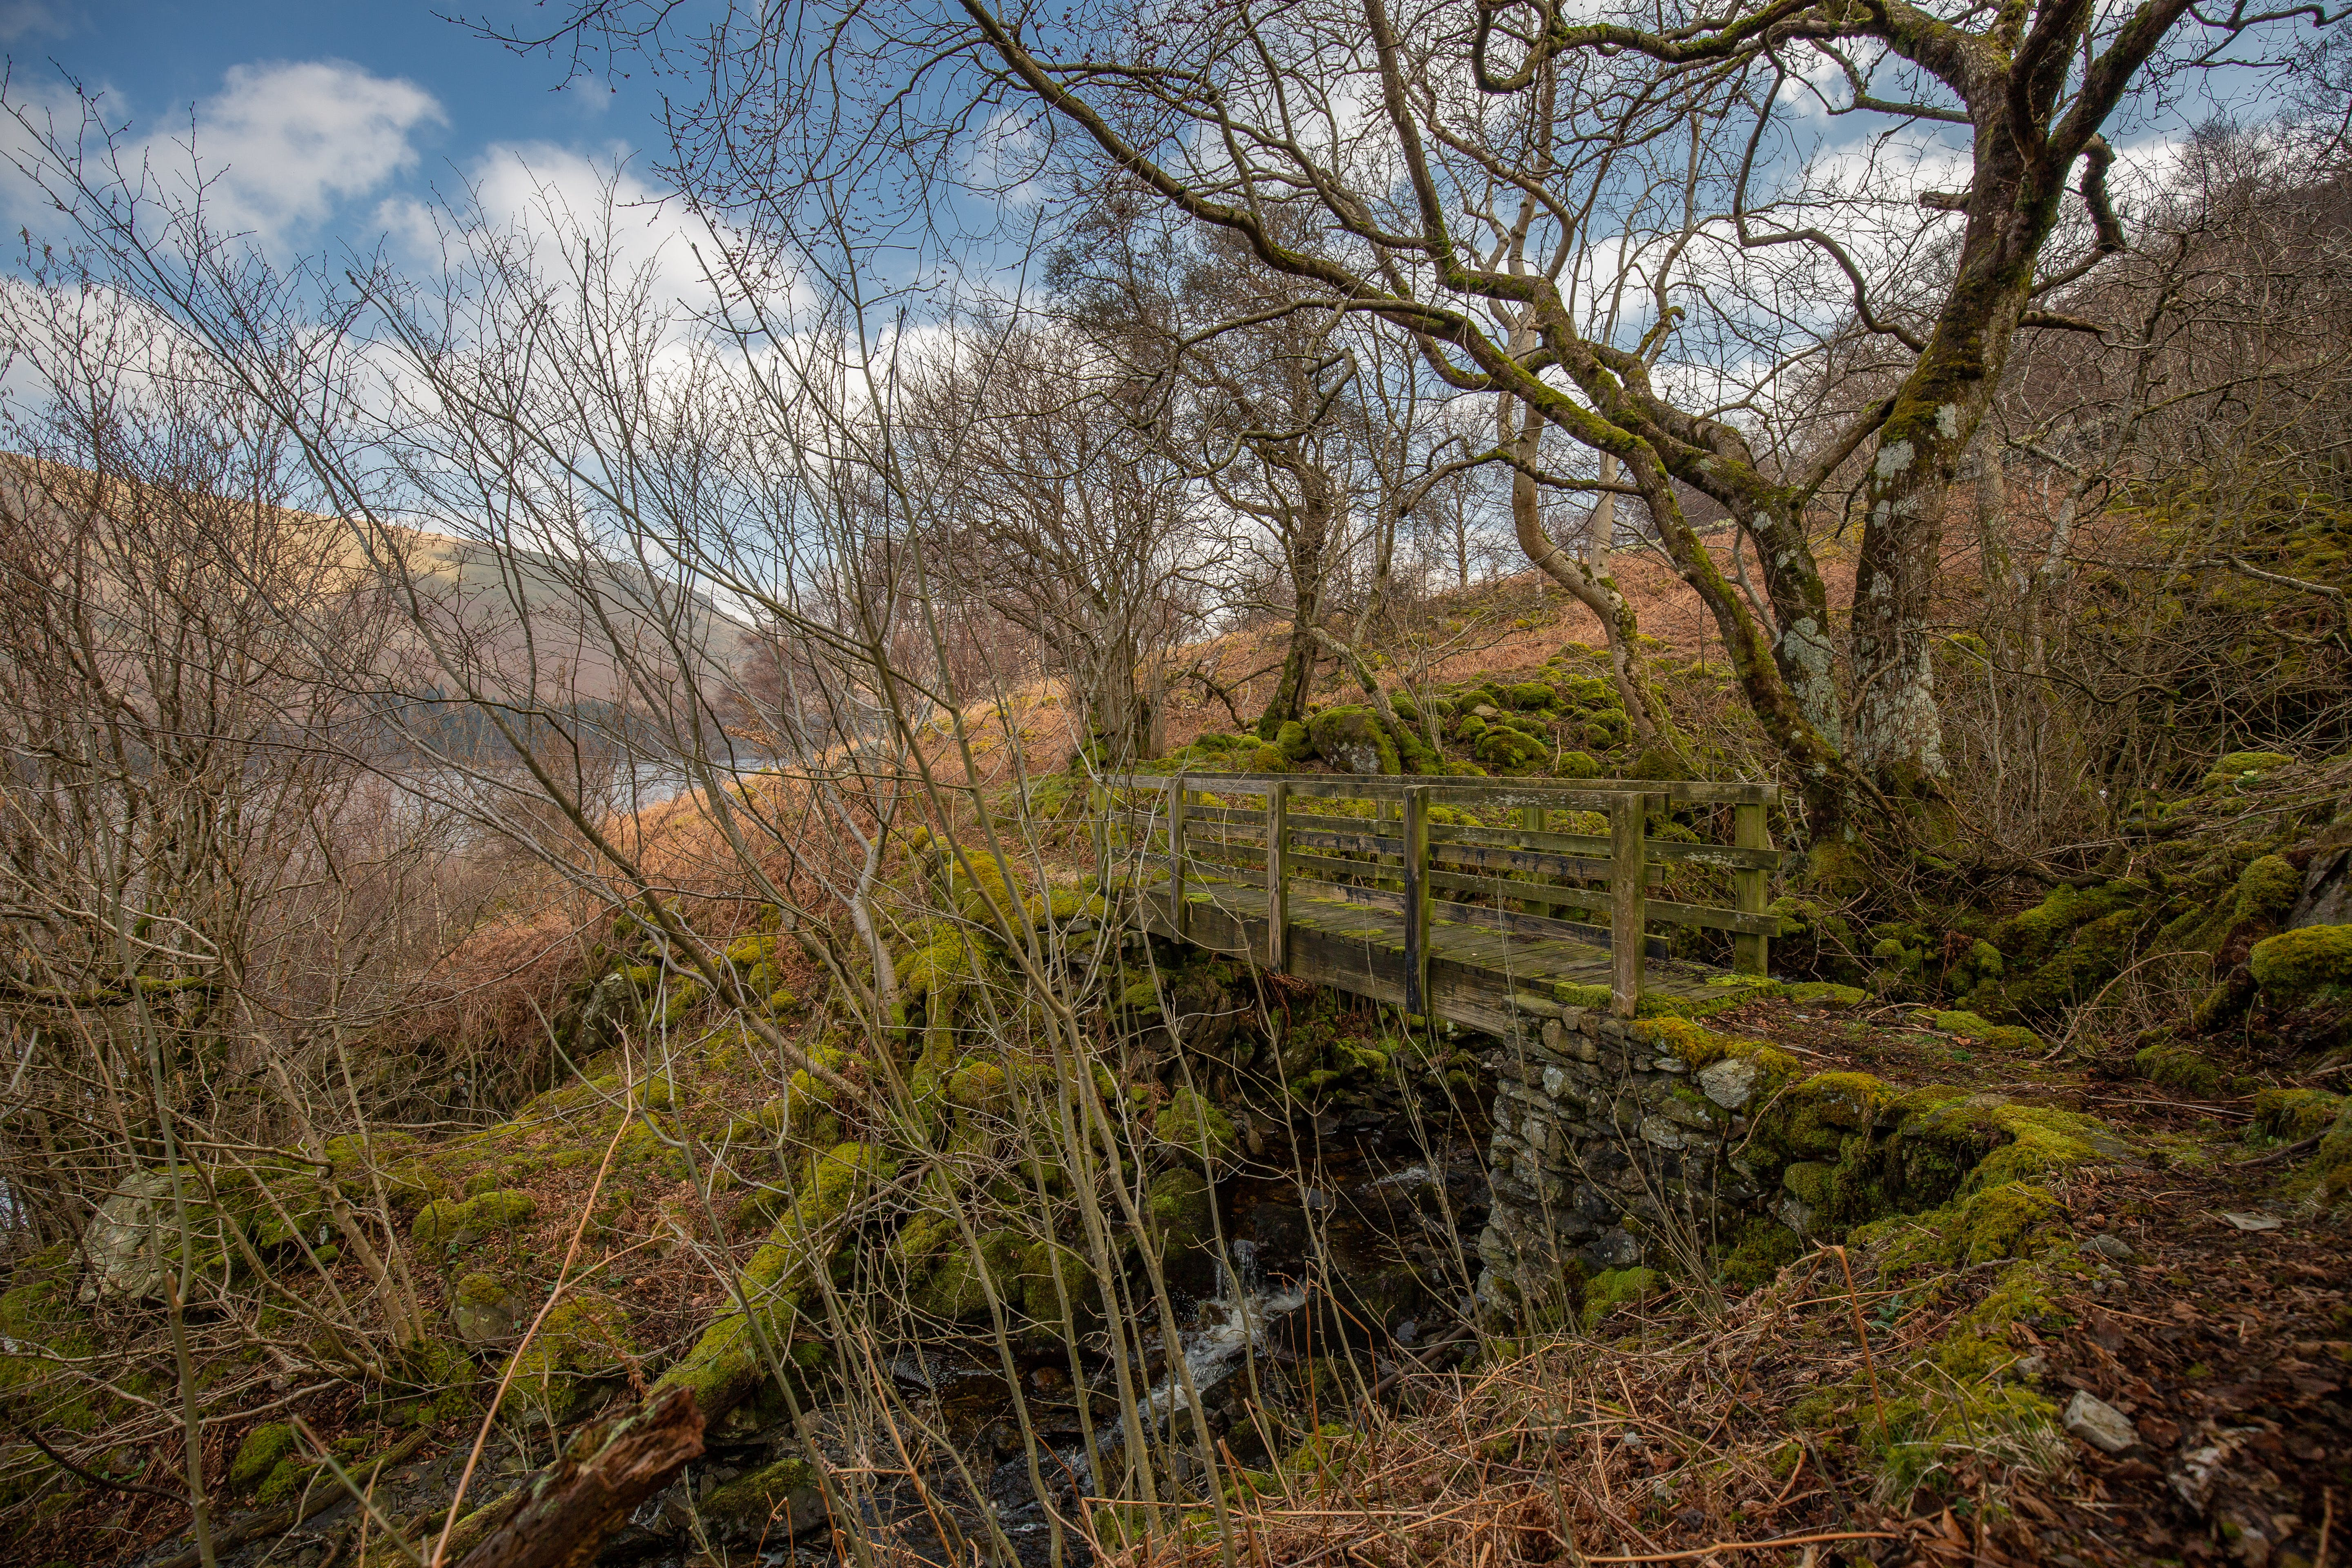 Concrete Bridge in the Middle of the Forest Surround by Brown Bare Trees